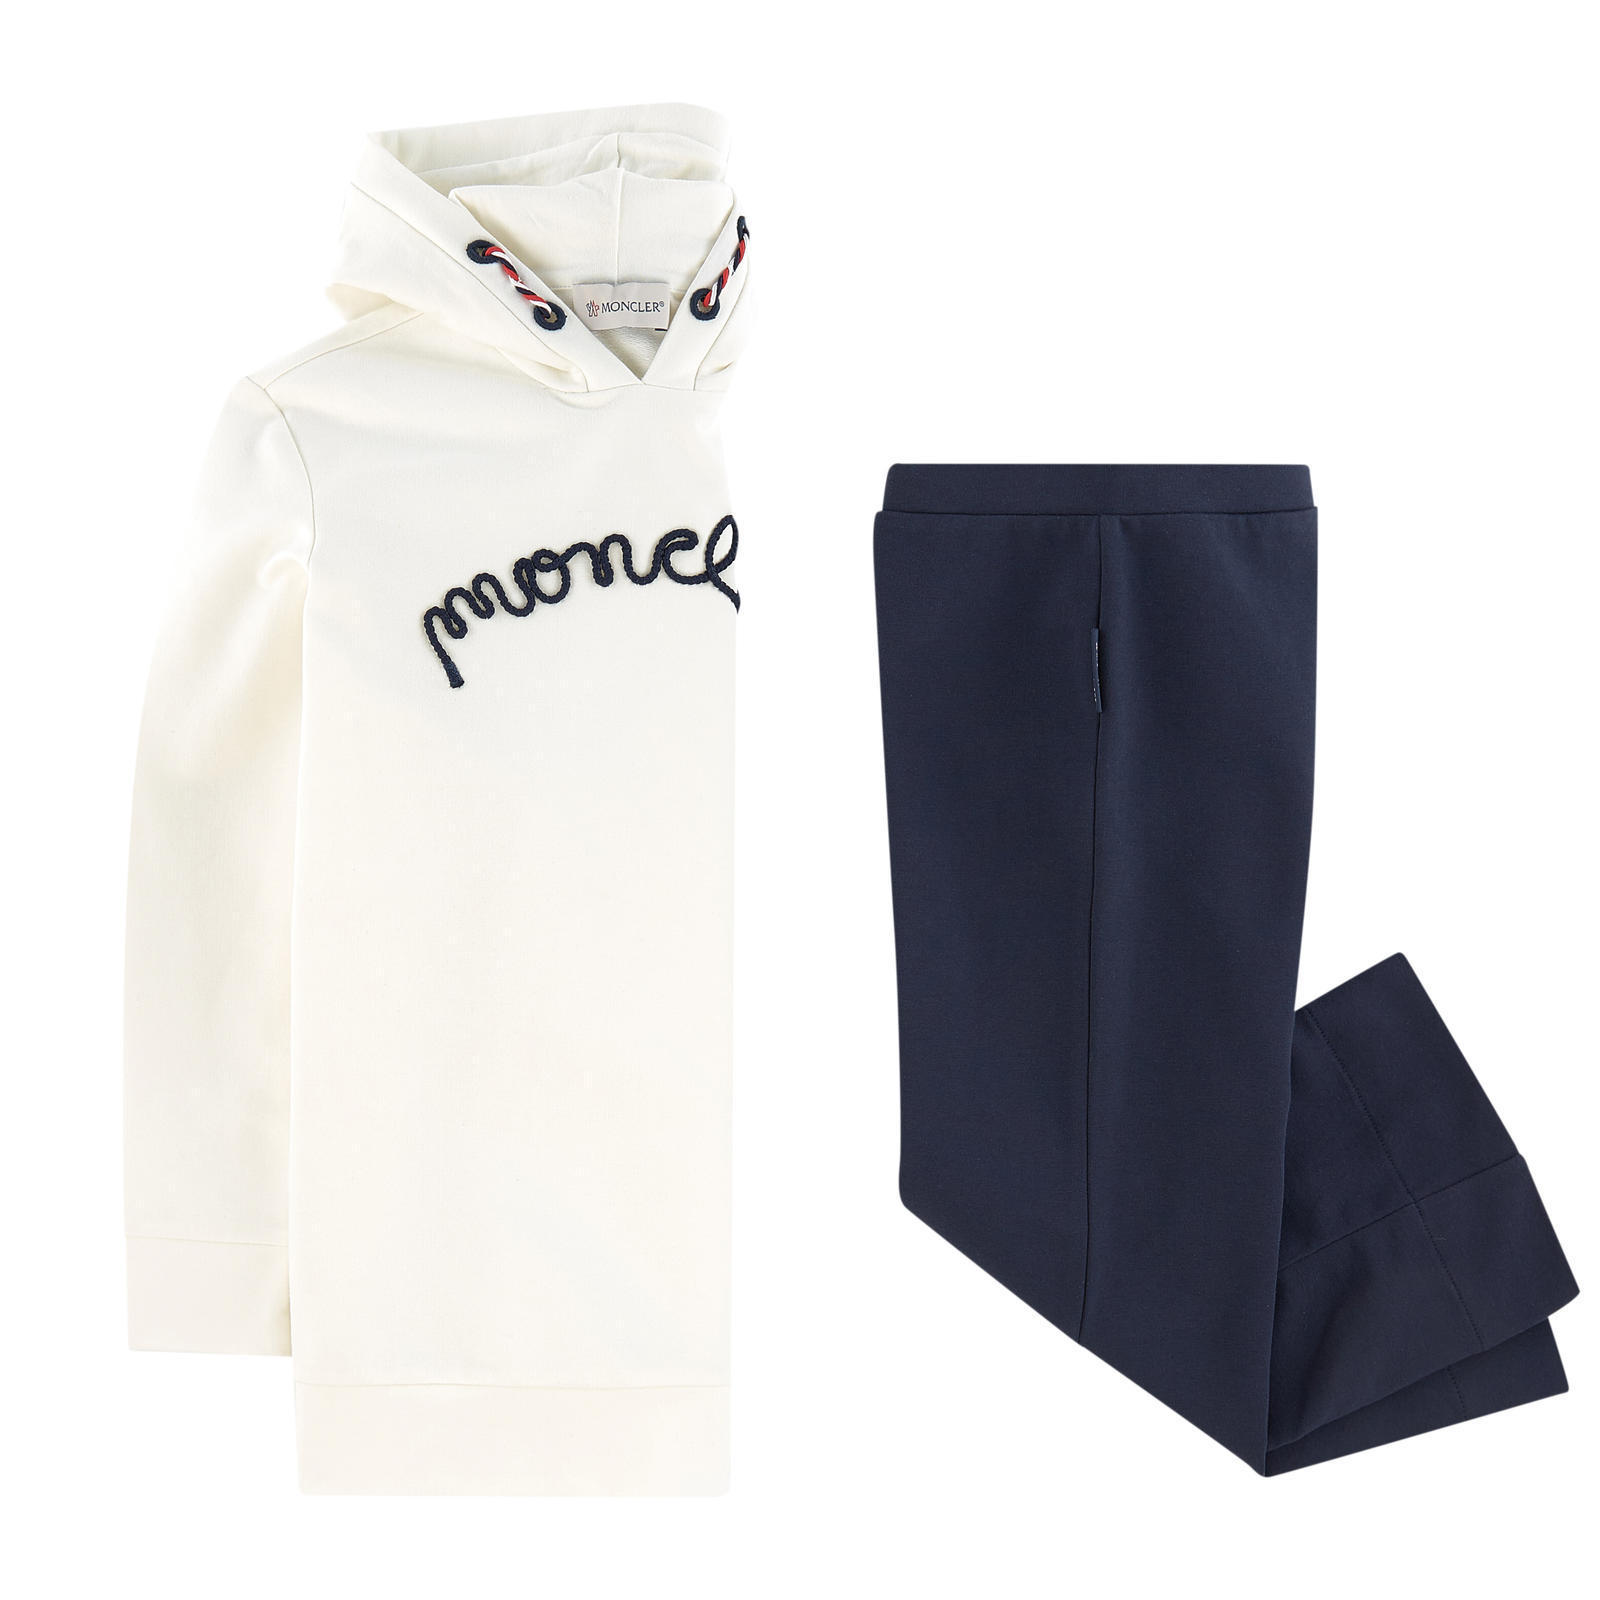 Moncler★2018SS★スウェット上下セット★4~6A